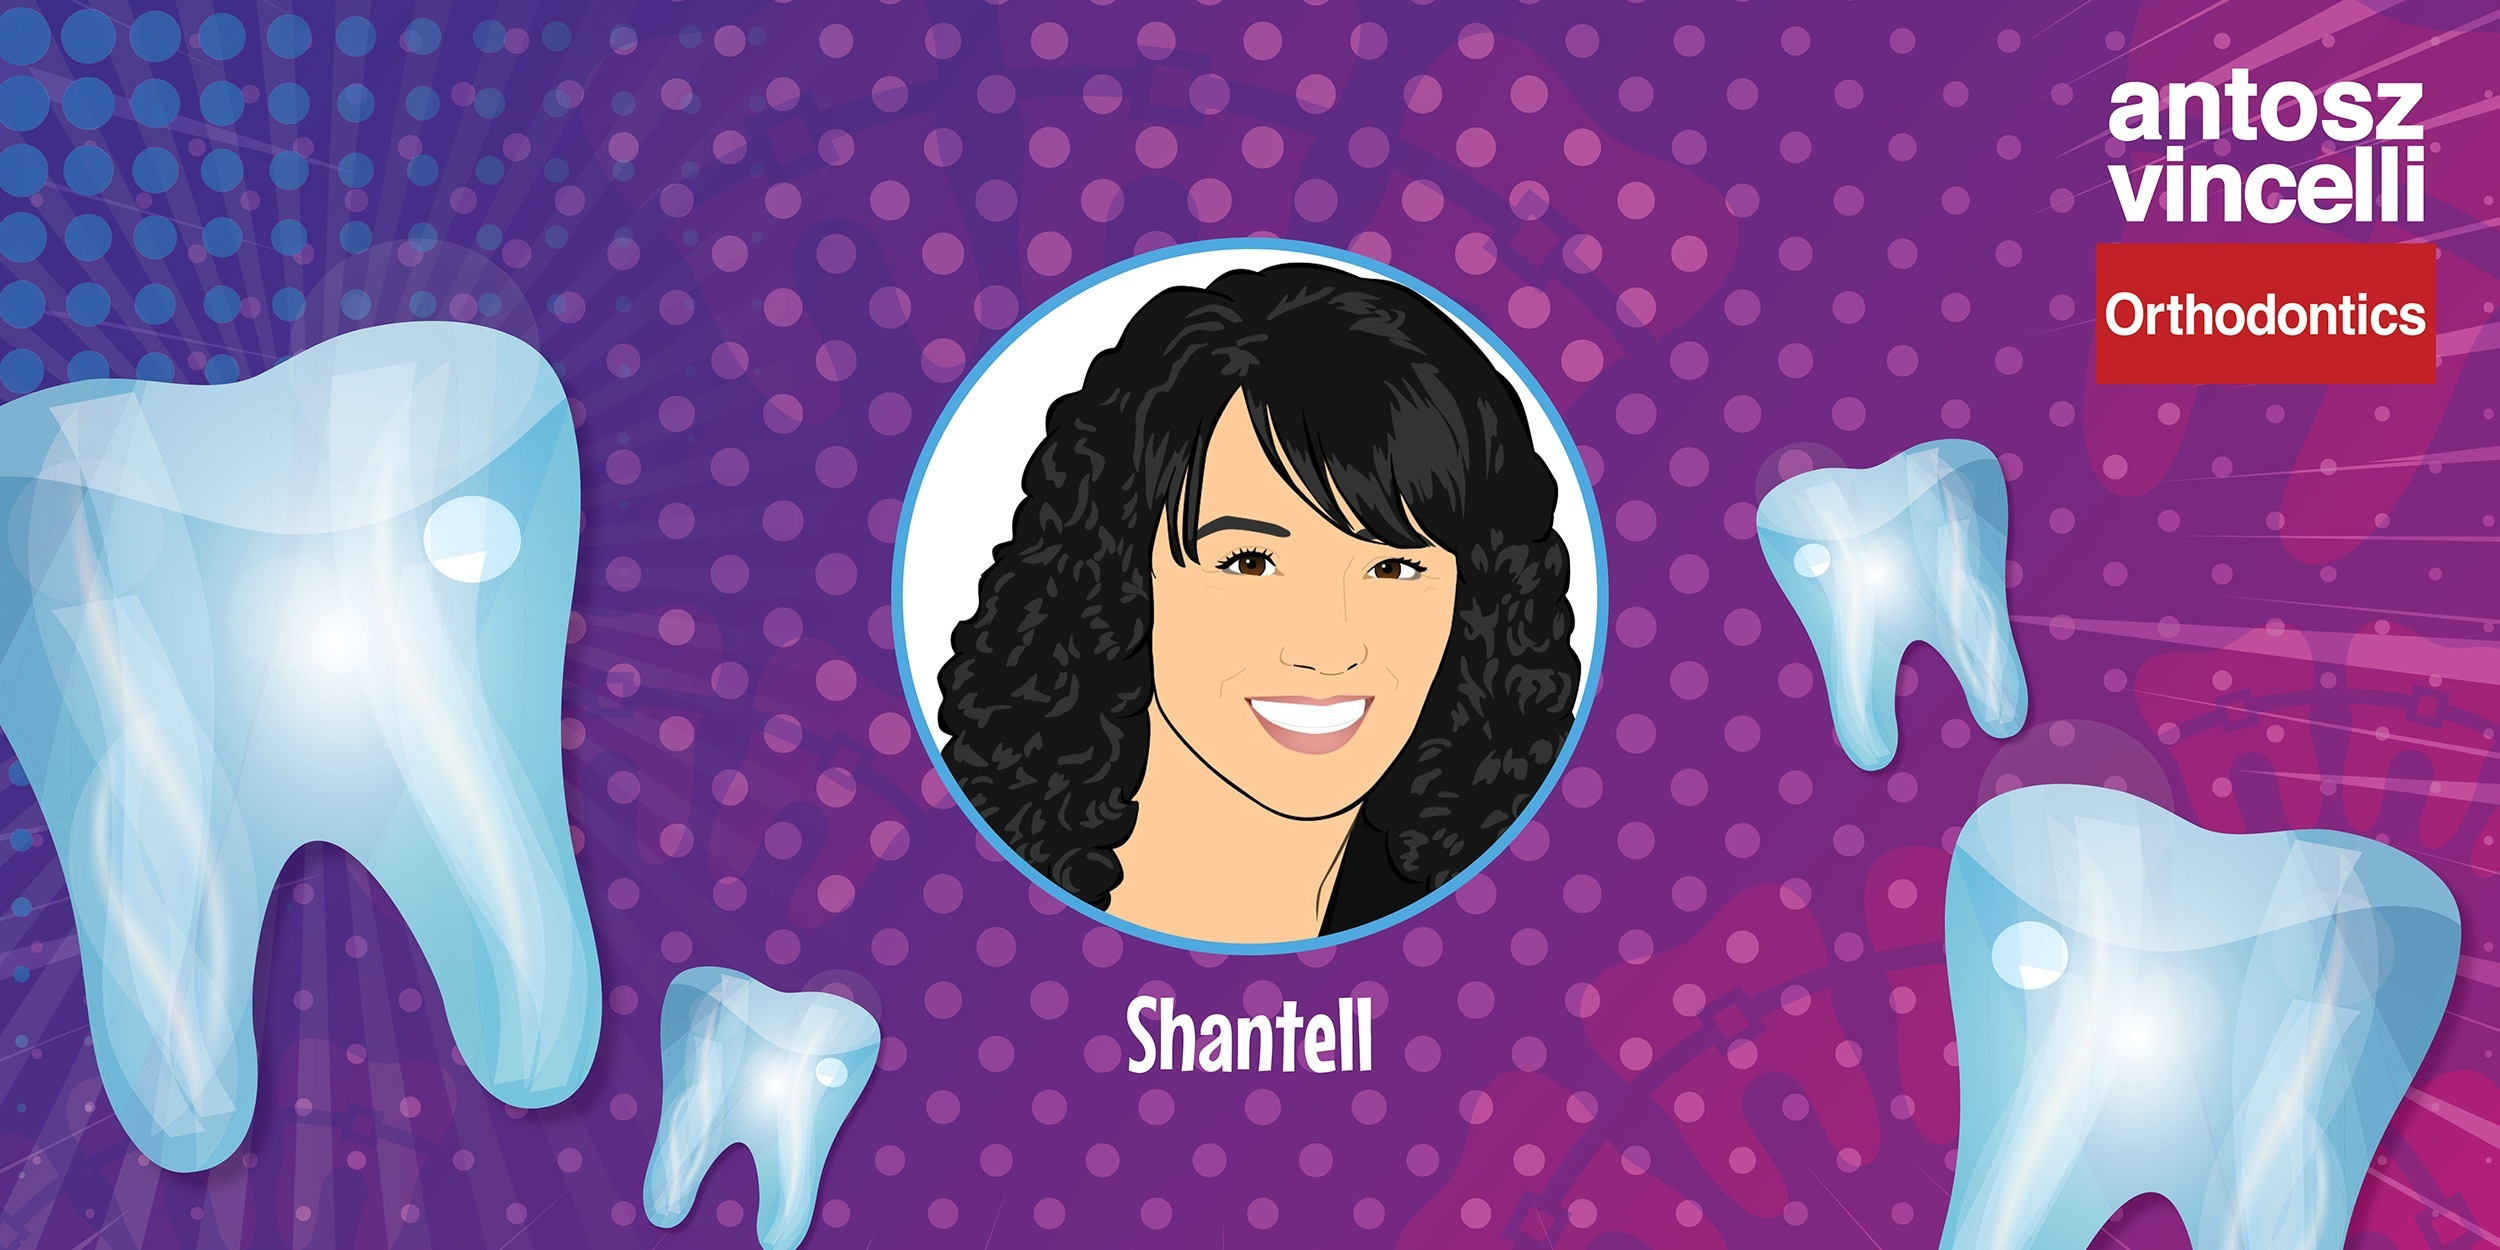 Celebrating: Shantell Our Orthodontic Treatment Coordinator